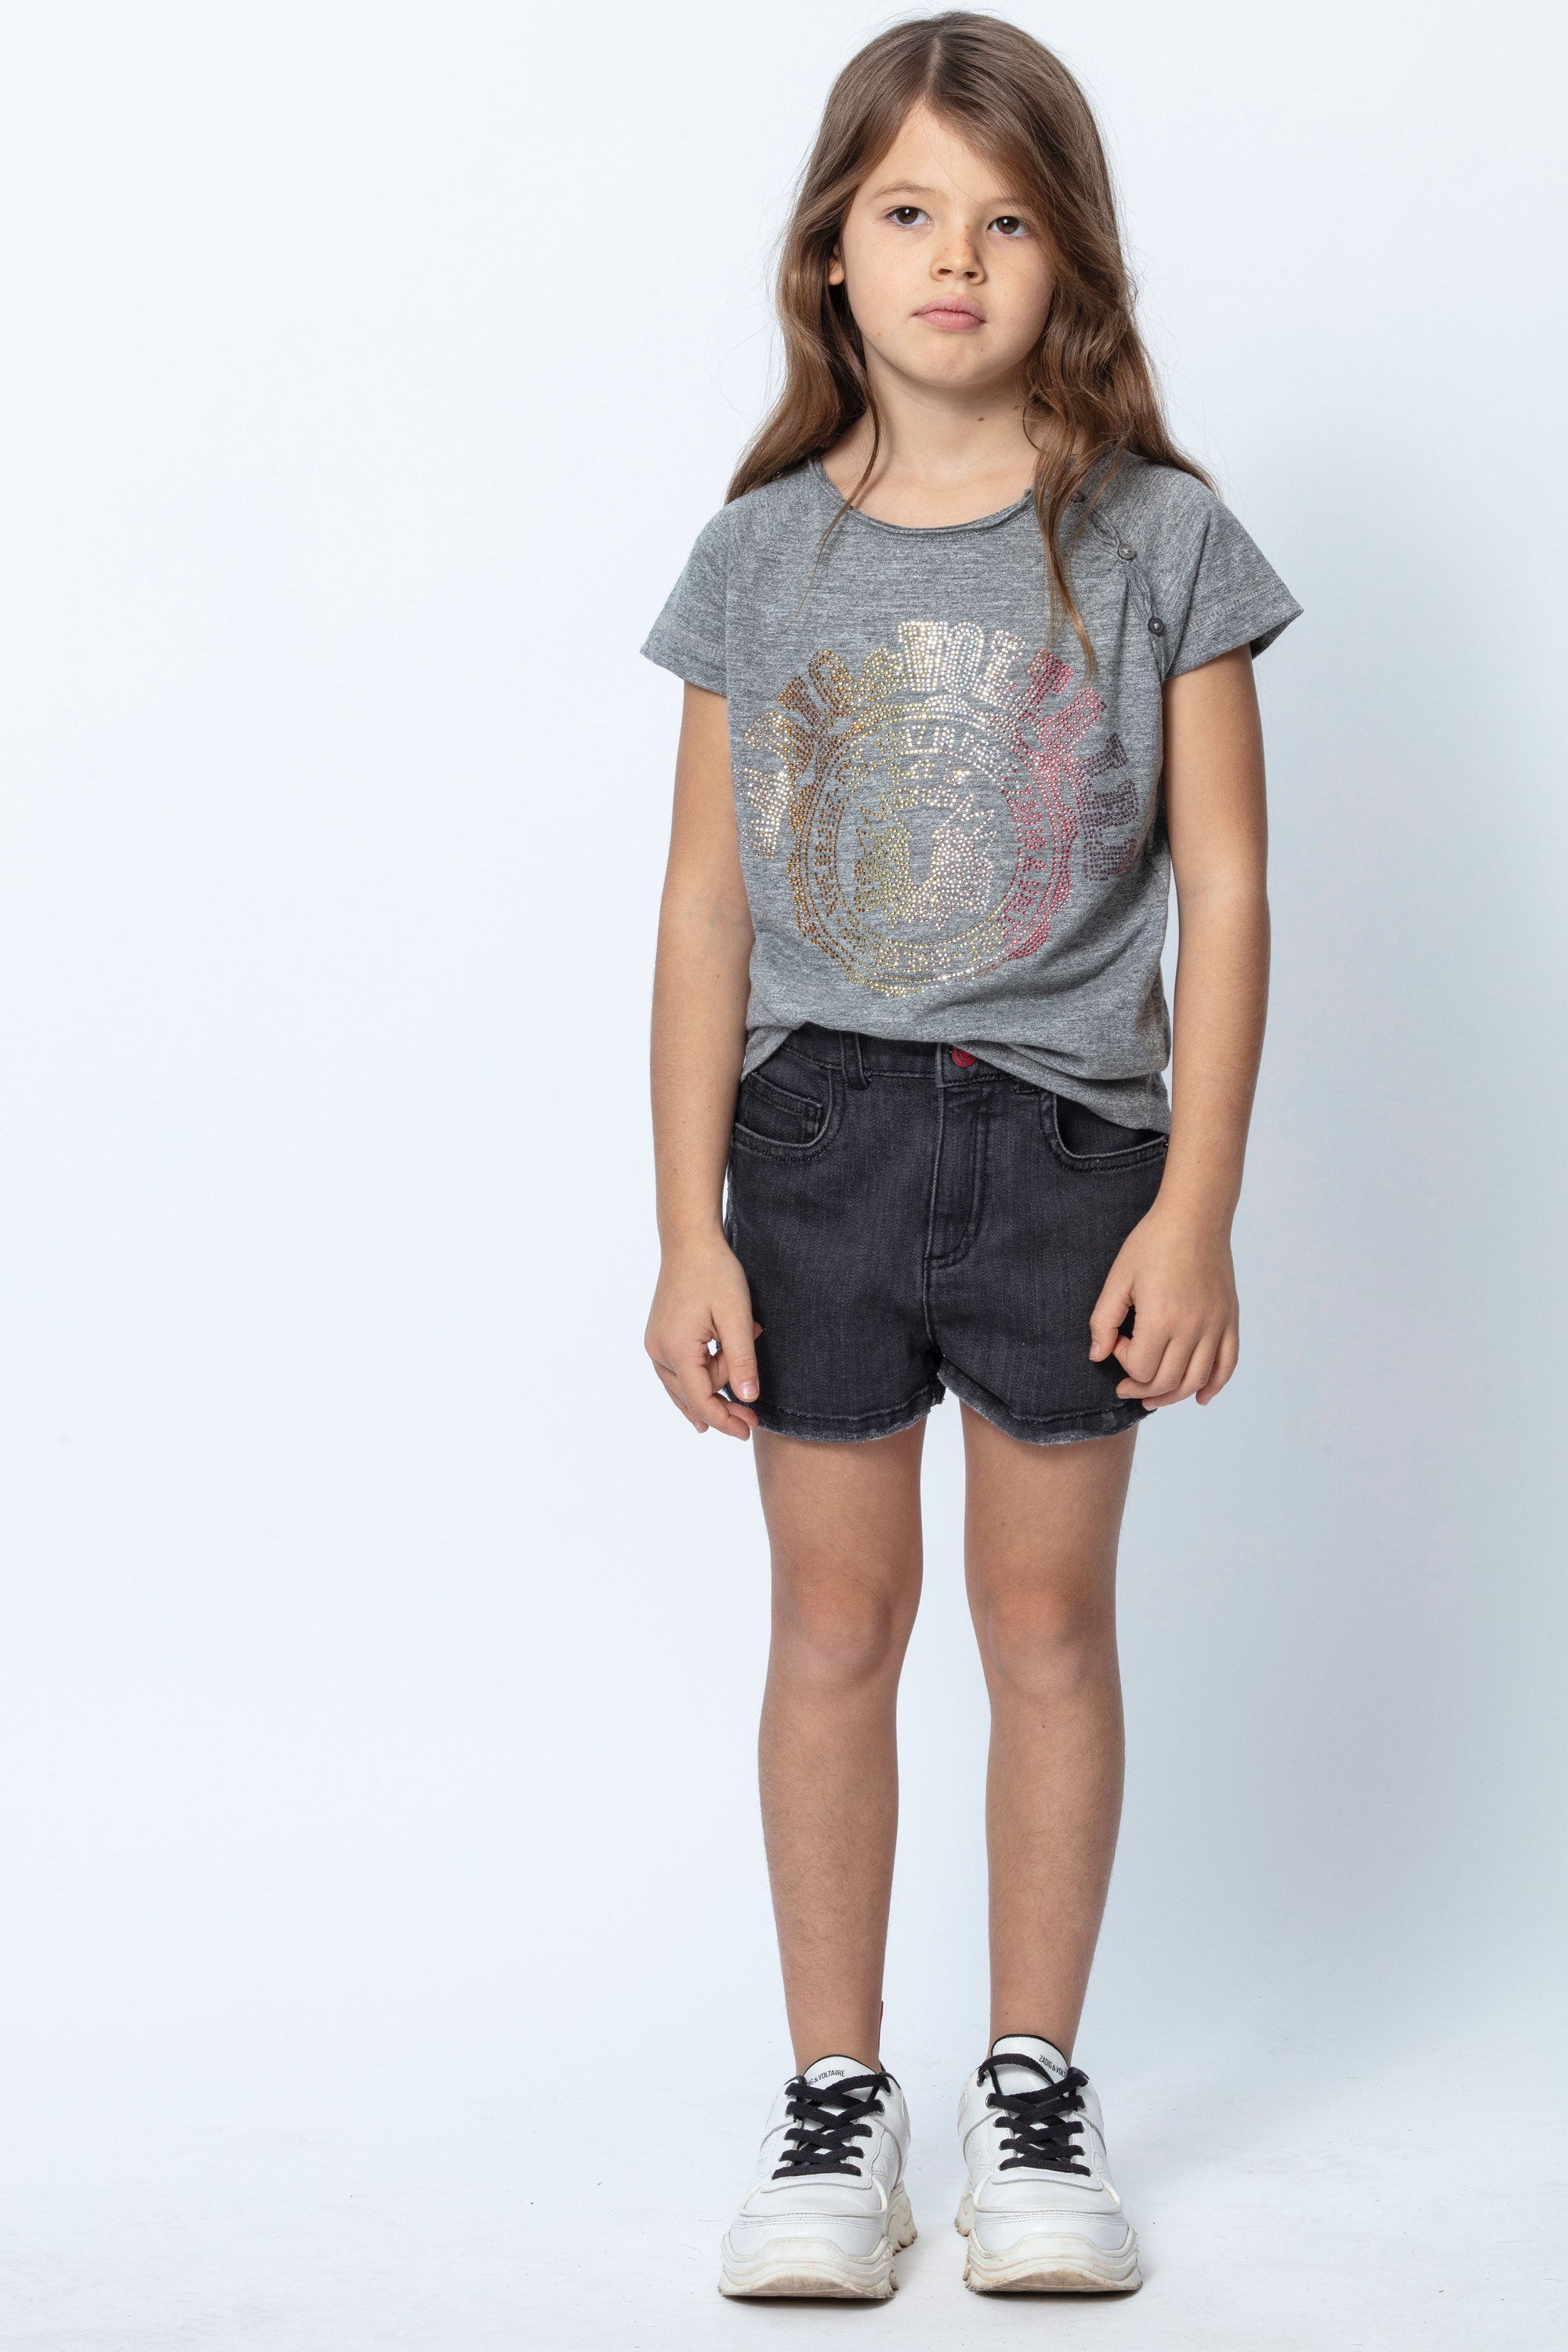 KIDS' DEVA T-SHIRT